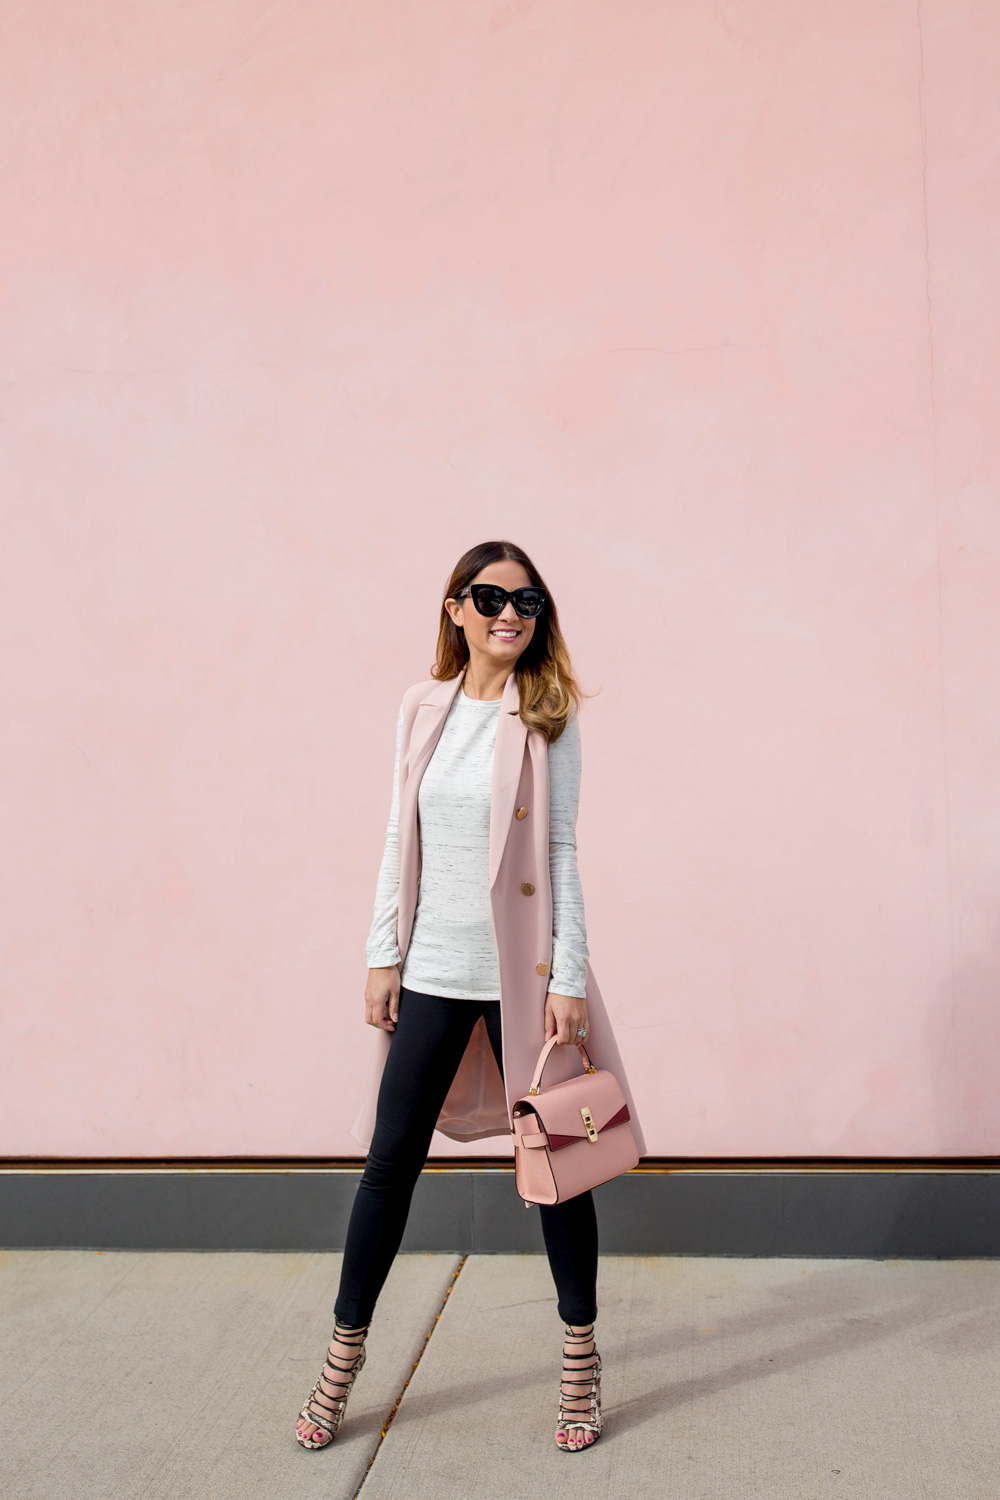 Chicago Pink Colored Wall